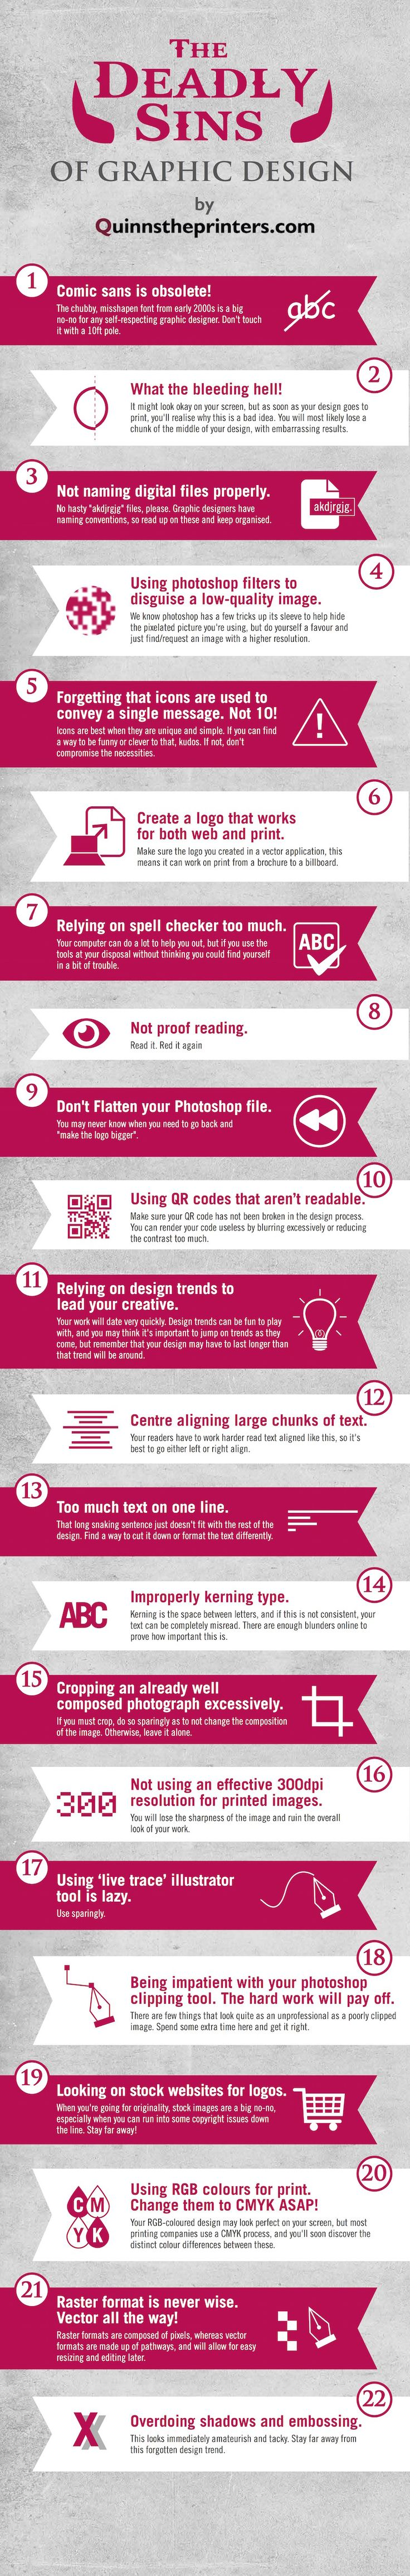 Graphic Design Sins: 22 Mistakes That Novice Designers Make…